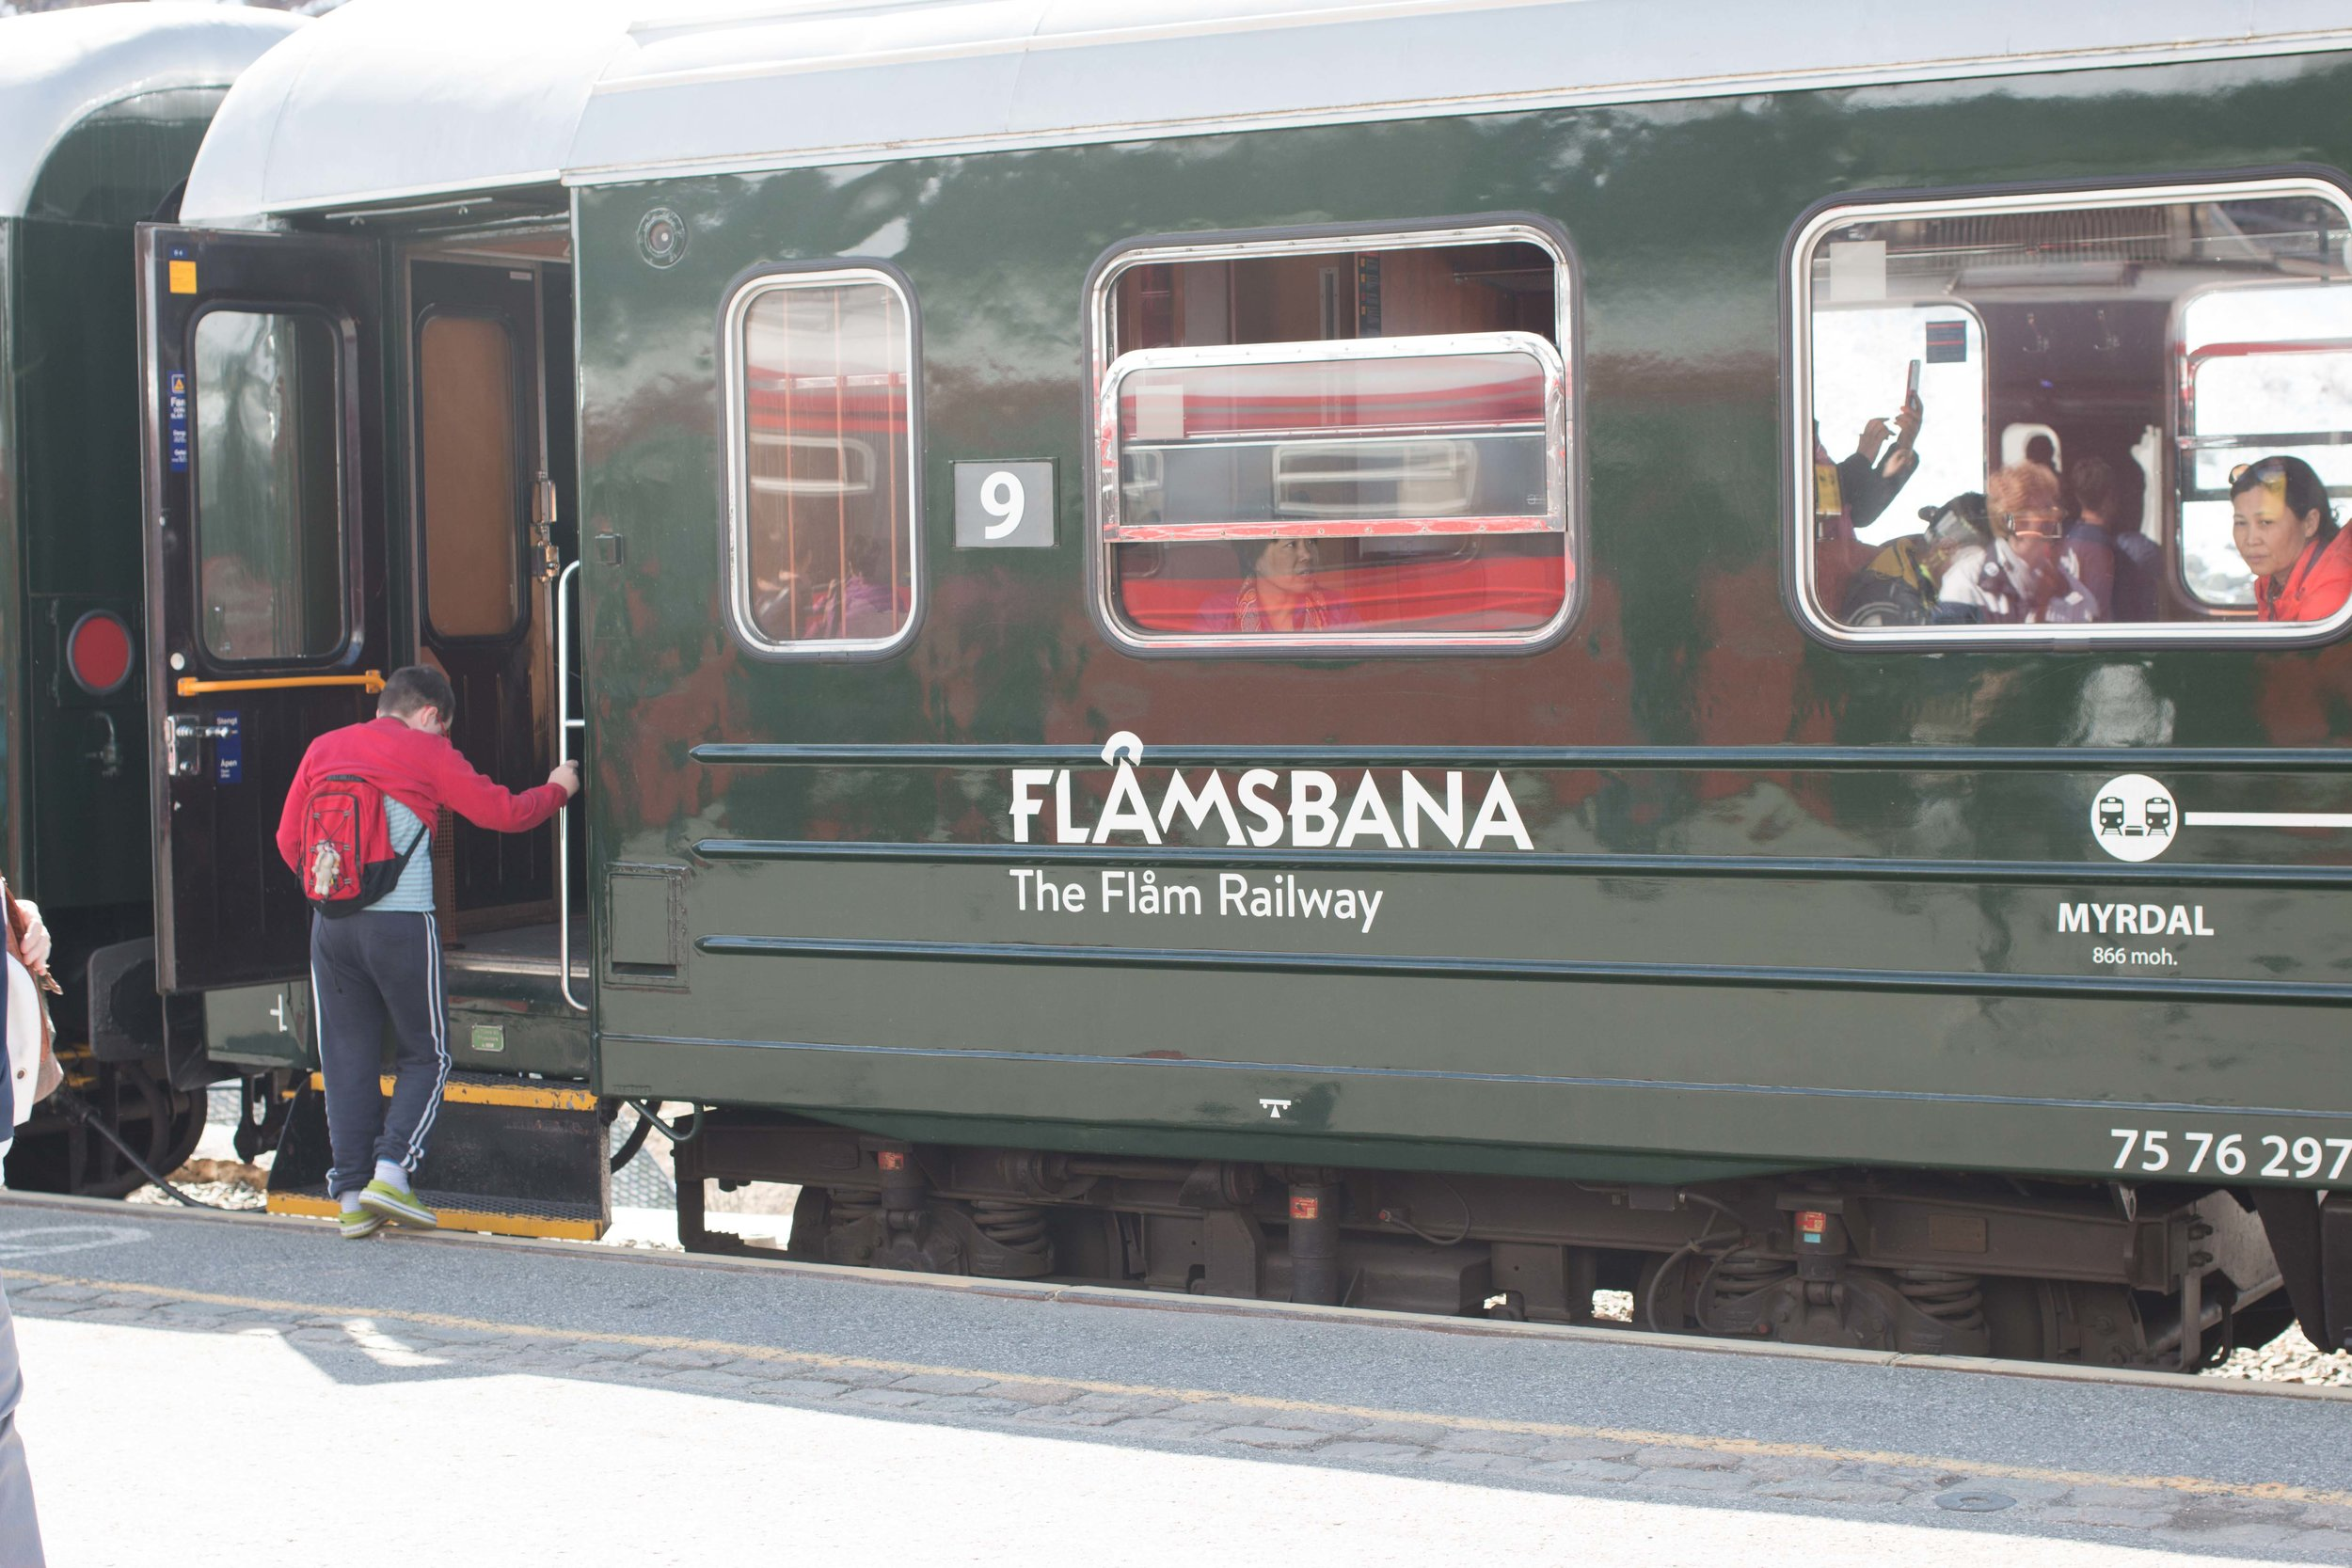 Vintage train for the Flam Railway